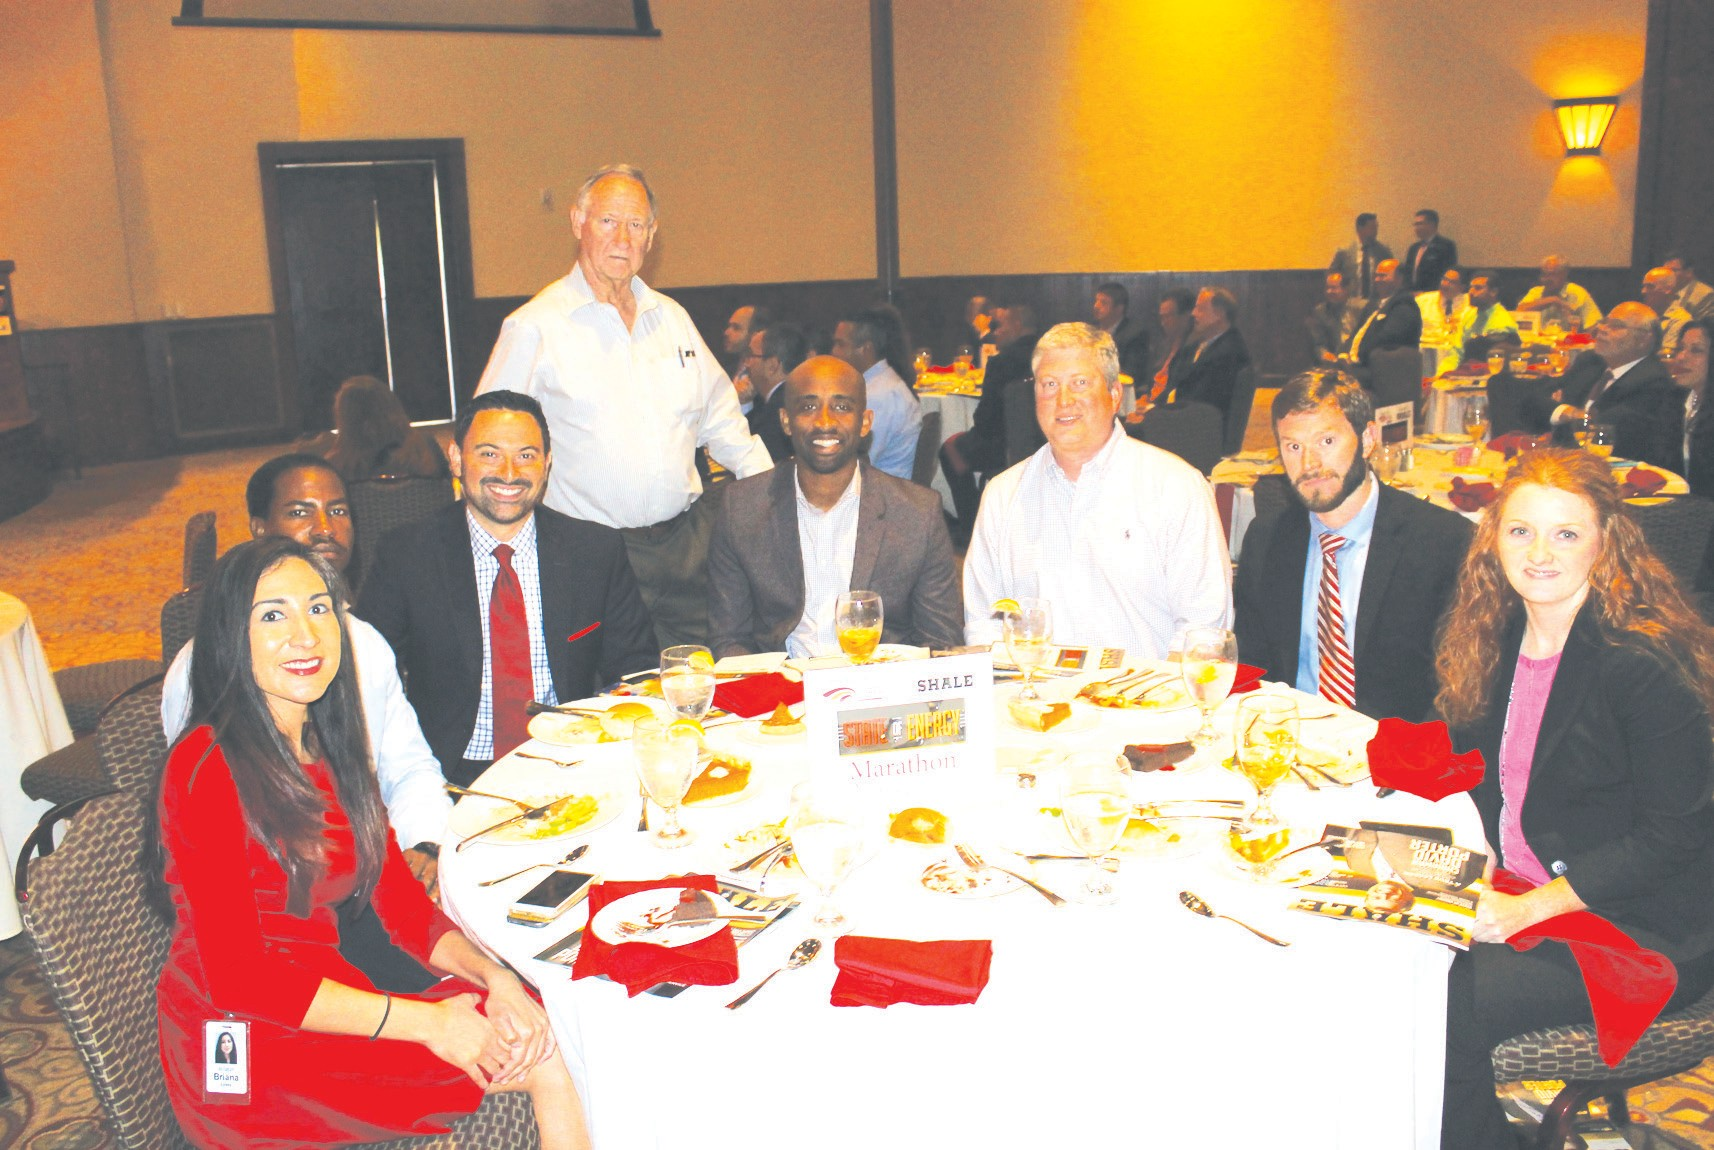 PLEASANT ON EXPRESS PHOTO Marathon Oil Corporation table at the State of Energy event. Seated, from left, are Briana Lyssy, MBA, Government and Community Affairs Liaison - Eagle Ford Asset Team; Anthony Williams – Human Resources Consultant; Eduardo Parra – Marathon Oil guest; Justin Iglehart – Facilities Engineer; David Nuckolls – HES Professional; Justin Houck – Regulatory Compliance Representative and Jinni Castañeda – Regulatory Compliance Supervisor. I was asked to sit at the Marathon table and am standing behind the Marathon group. Marathon Oil Corp. has an operations office located in Pleasanton that serves the Eagle Ford Shale.